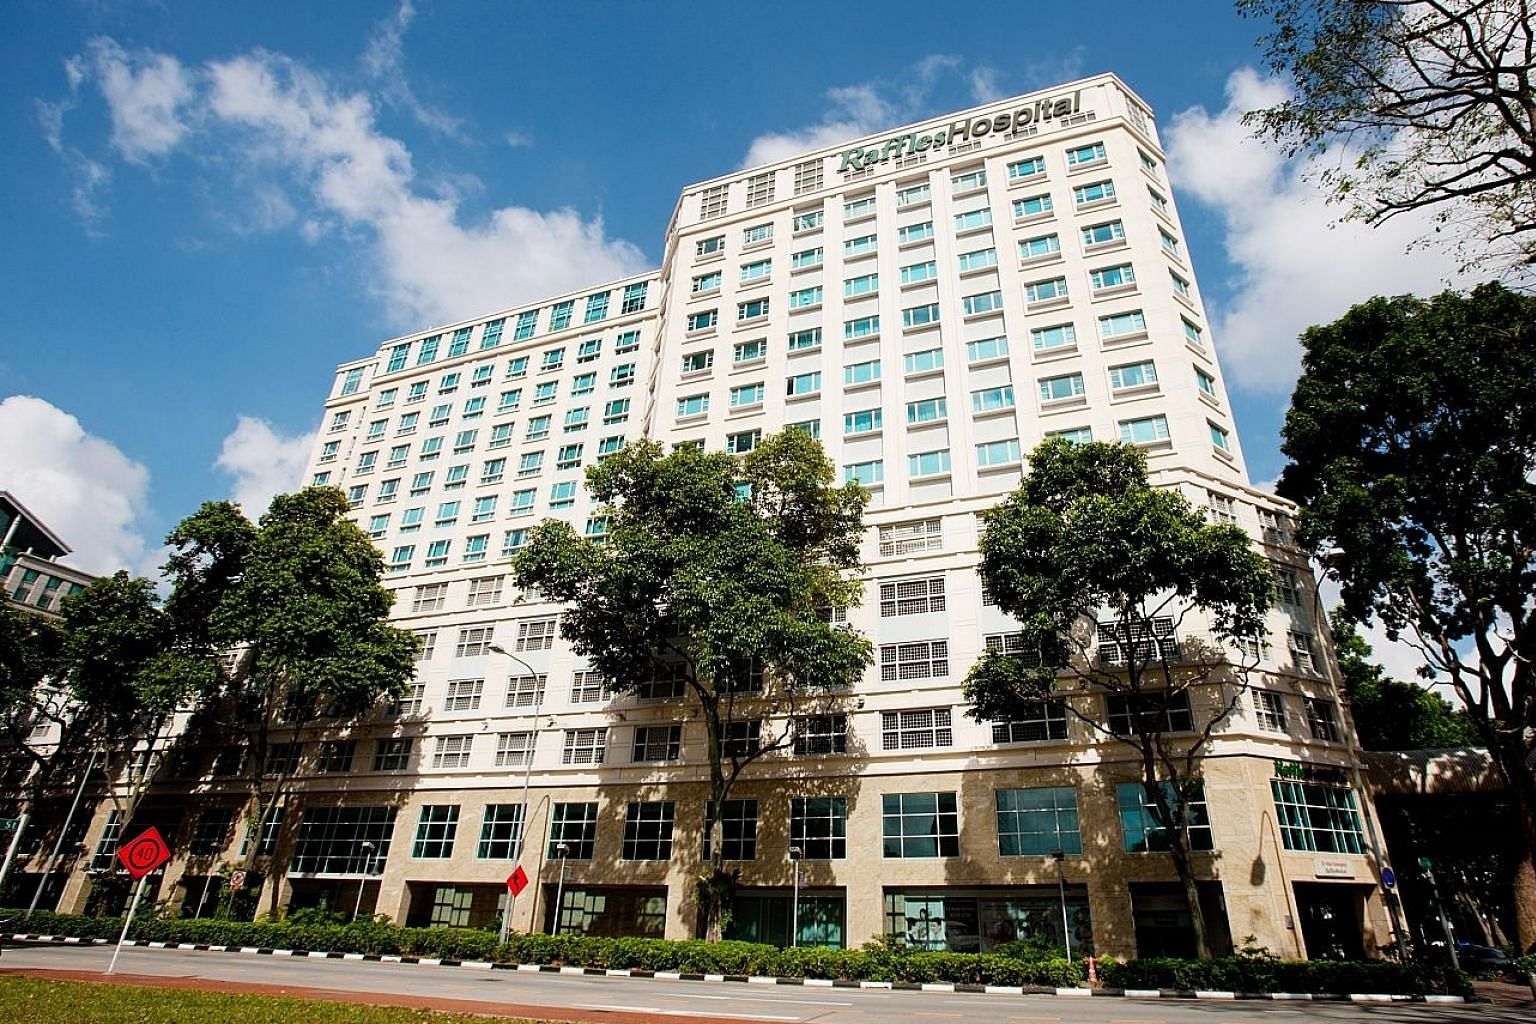 Raffles Medical Group is expecting a boost from the extension to its Raffles Hospital, which will increase its bed and outpatient care capacity.